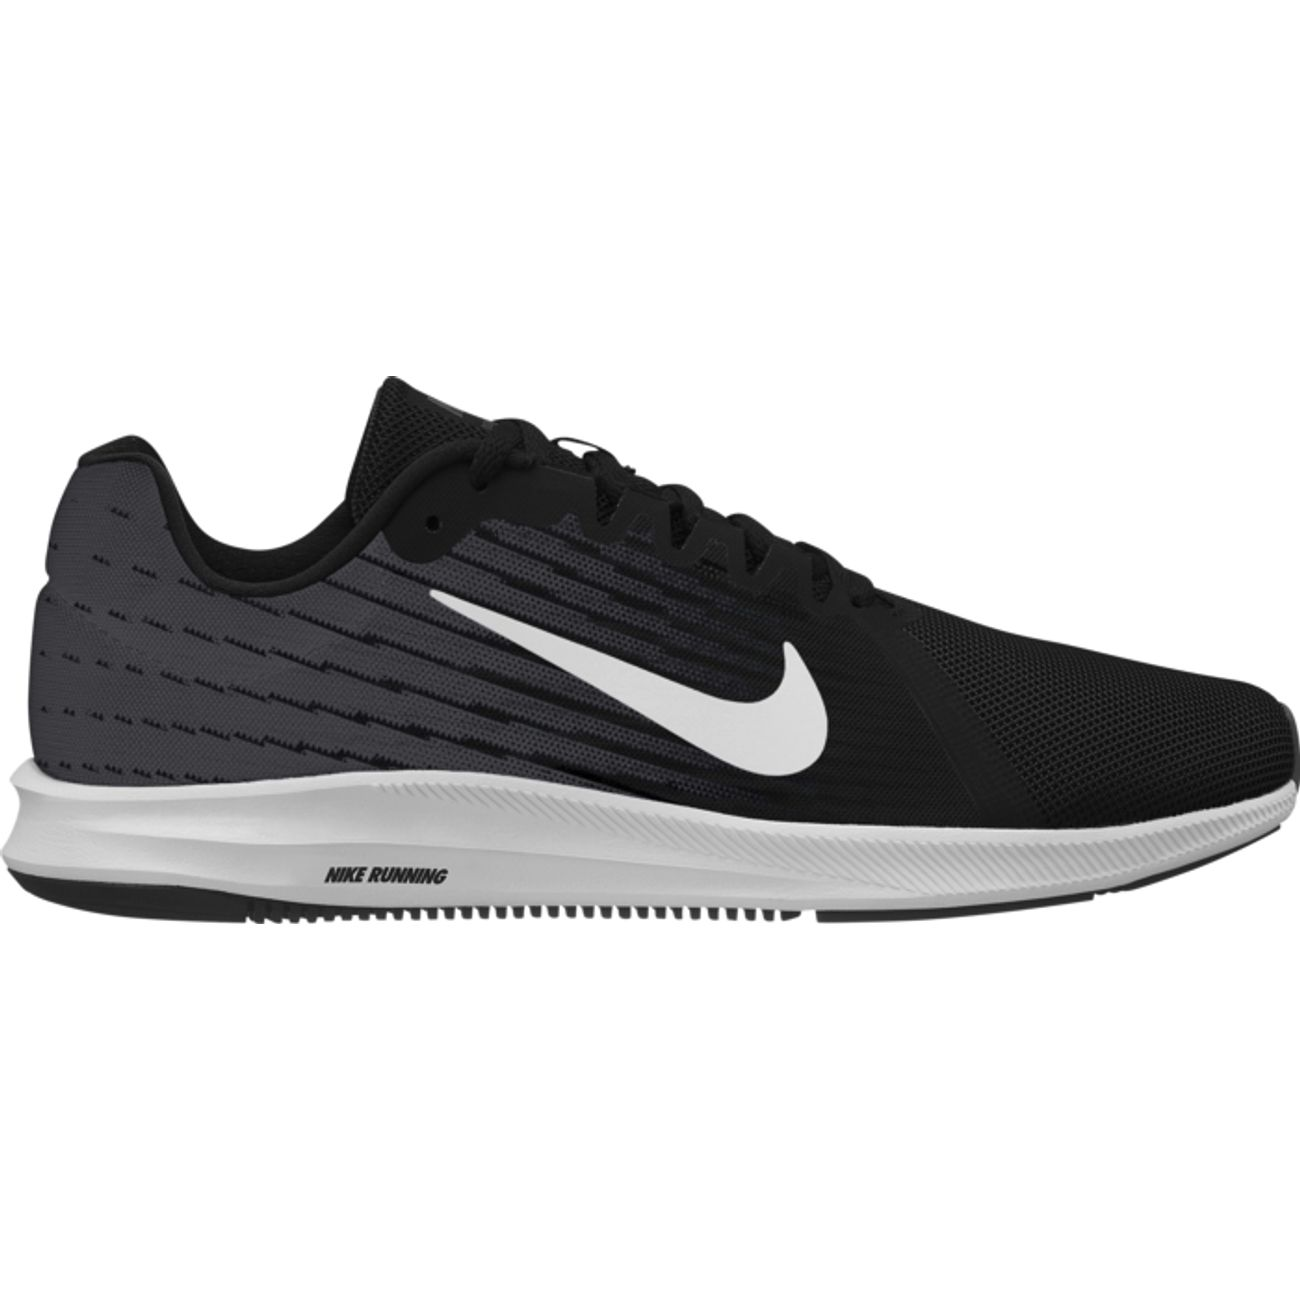 CHAUSSURES BASSES running homme NIKE BTE DOWNSHIFTER, NOIR